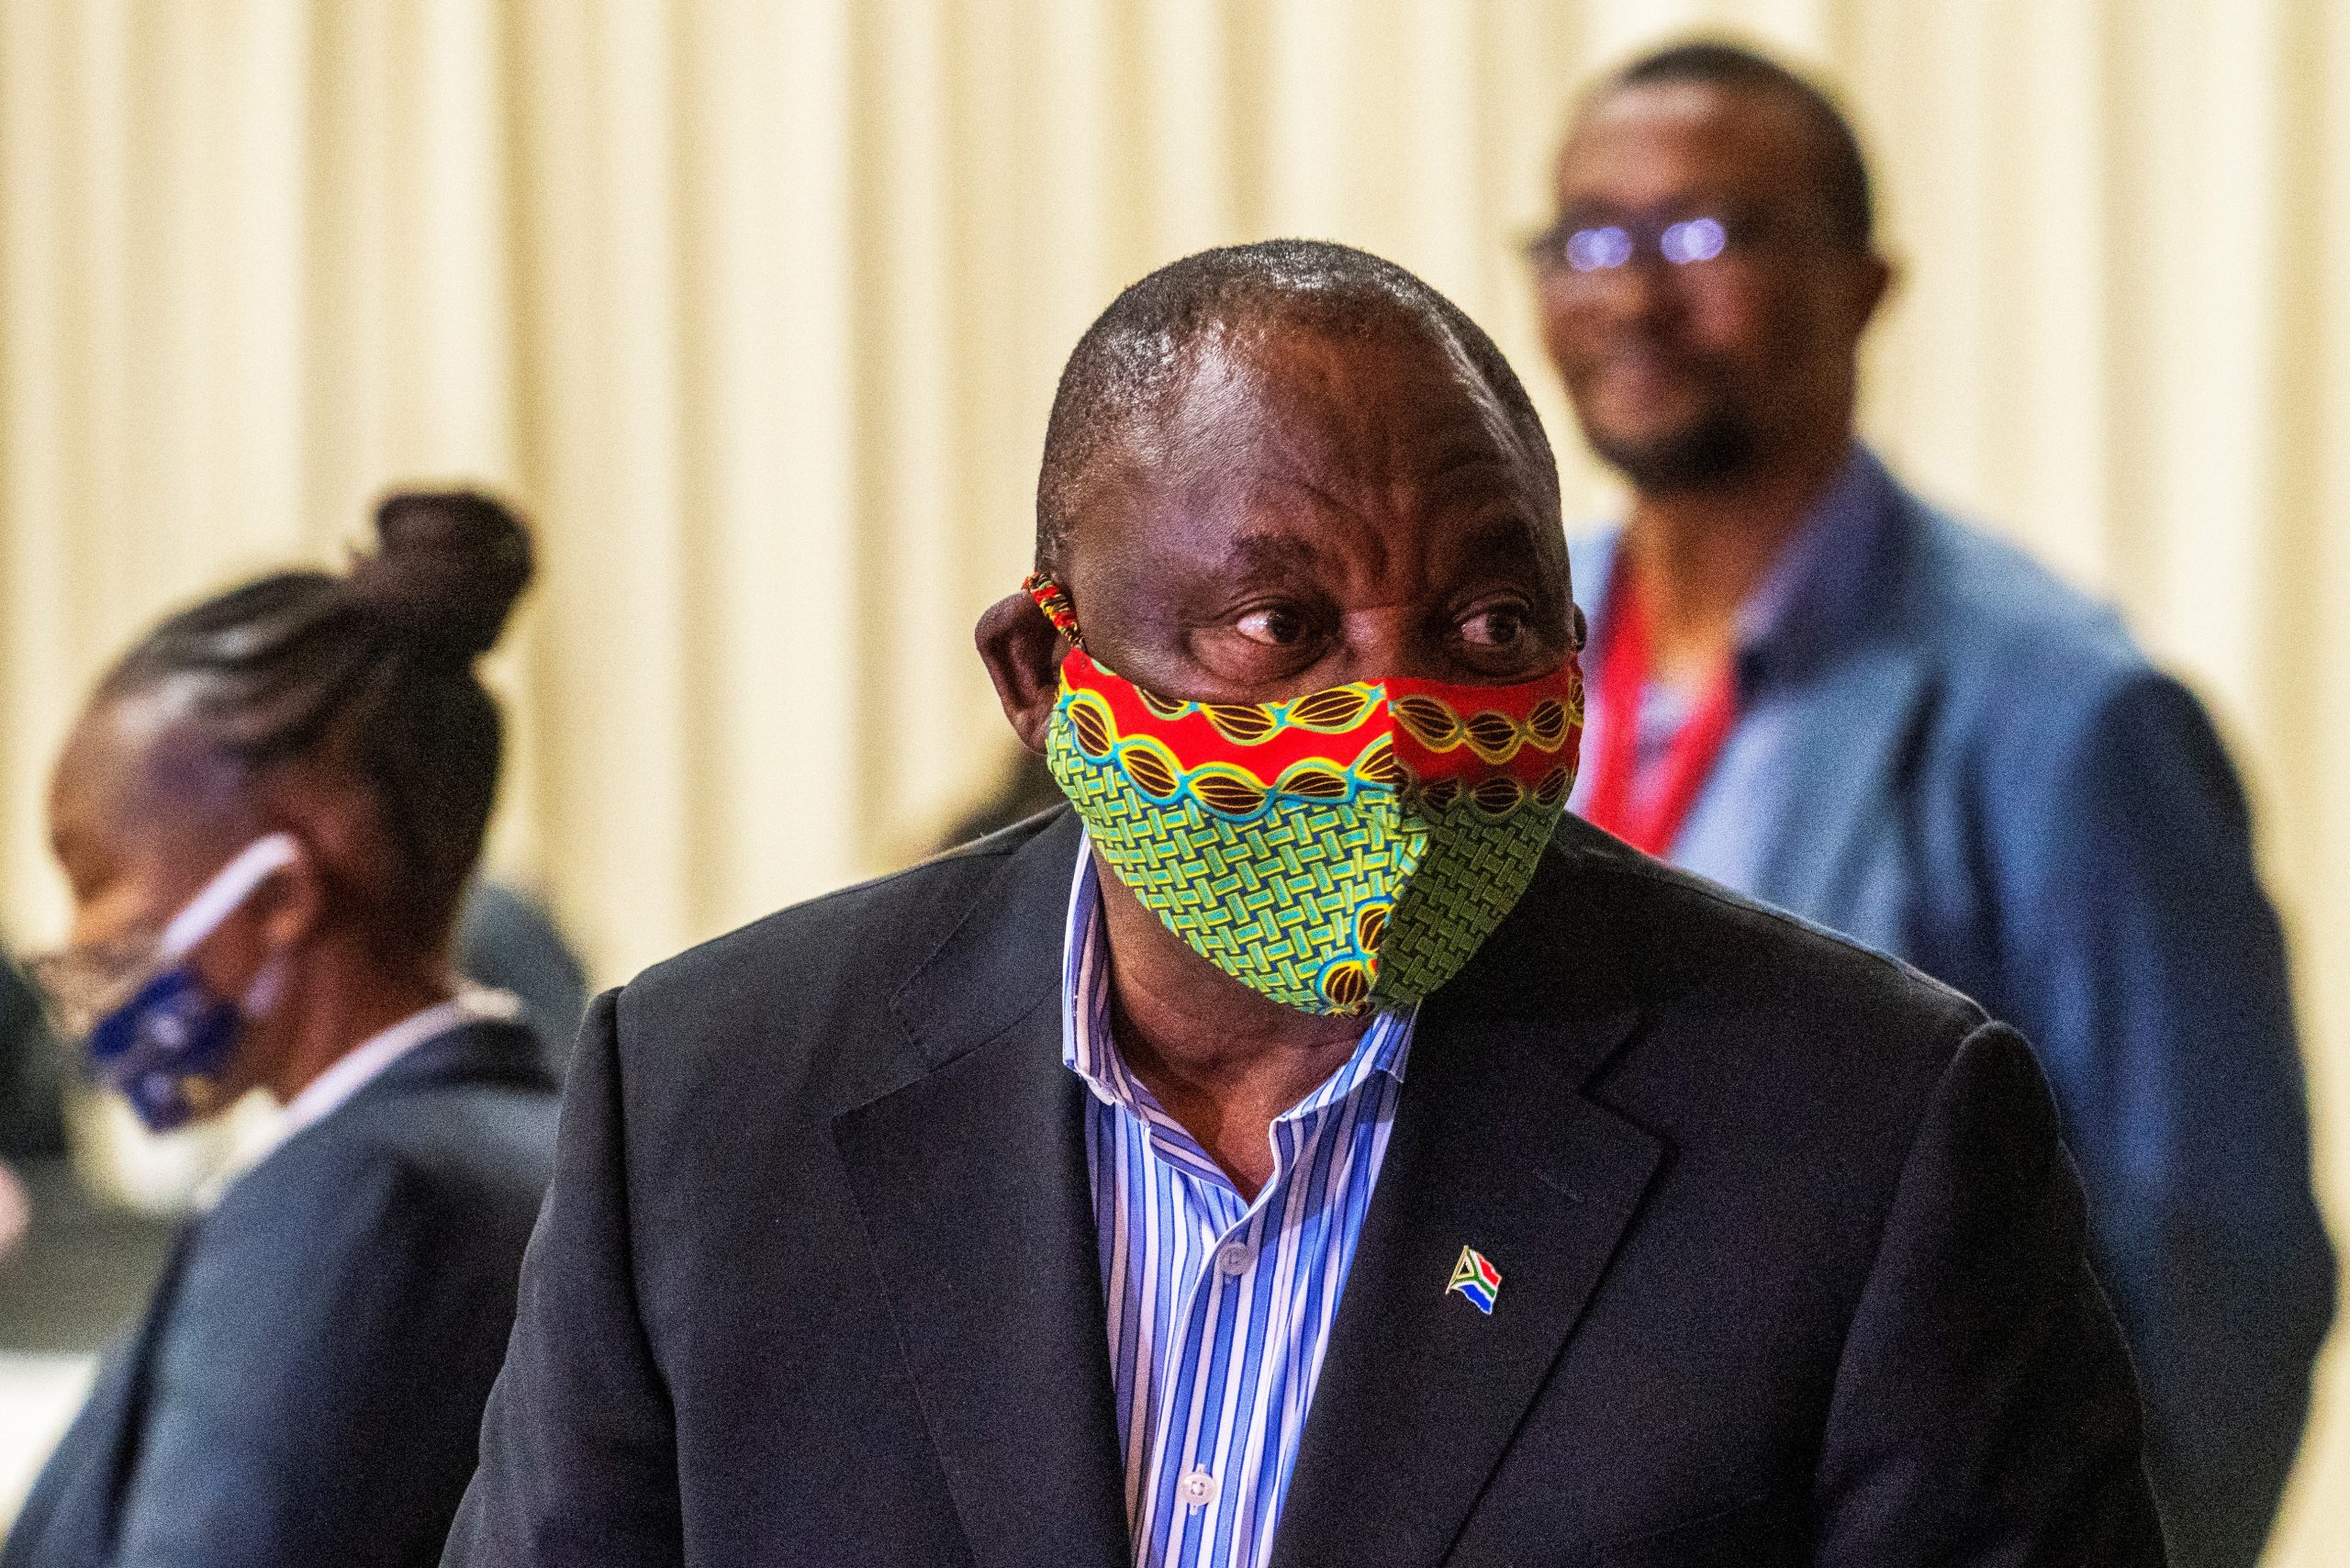 South African President Cyril Ramaphosa arrives at NASREC Expo Centre in Johannesburg on April 24, 2020.